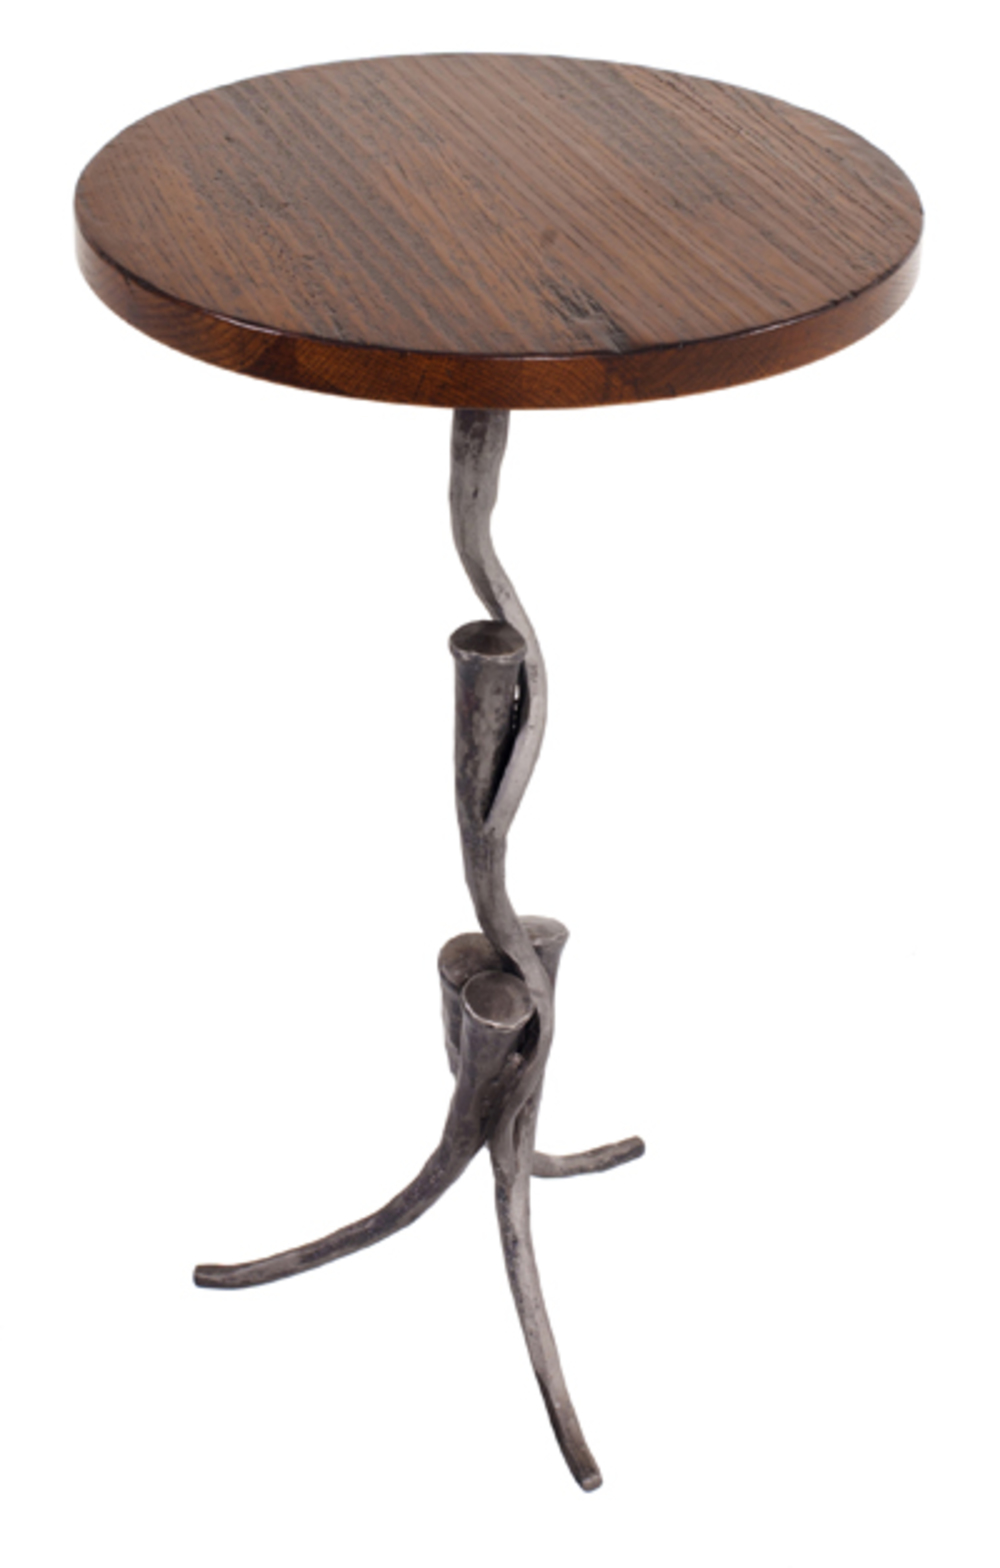 Charleston Forge - Tangle Drink table